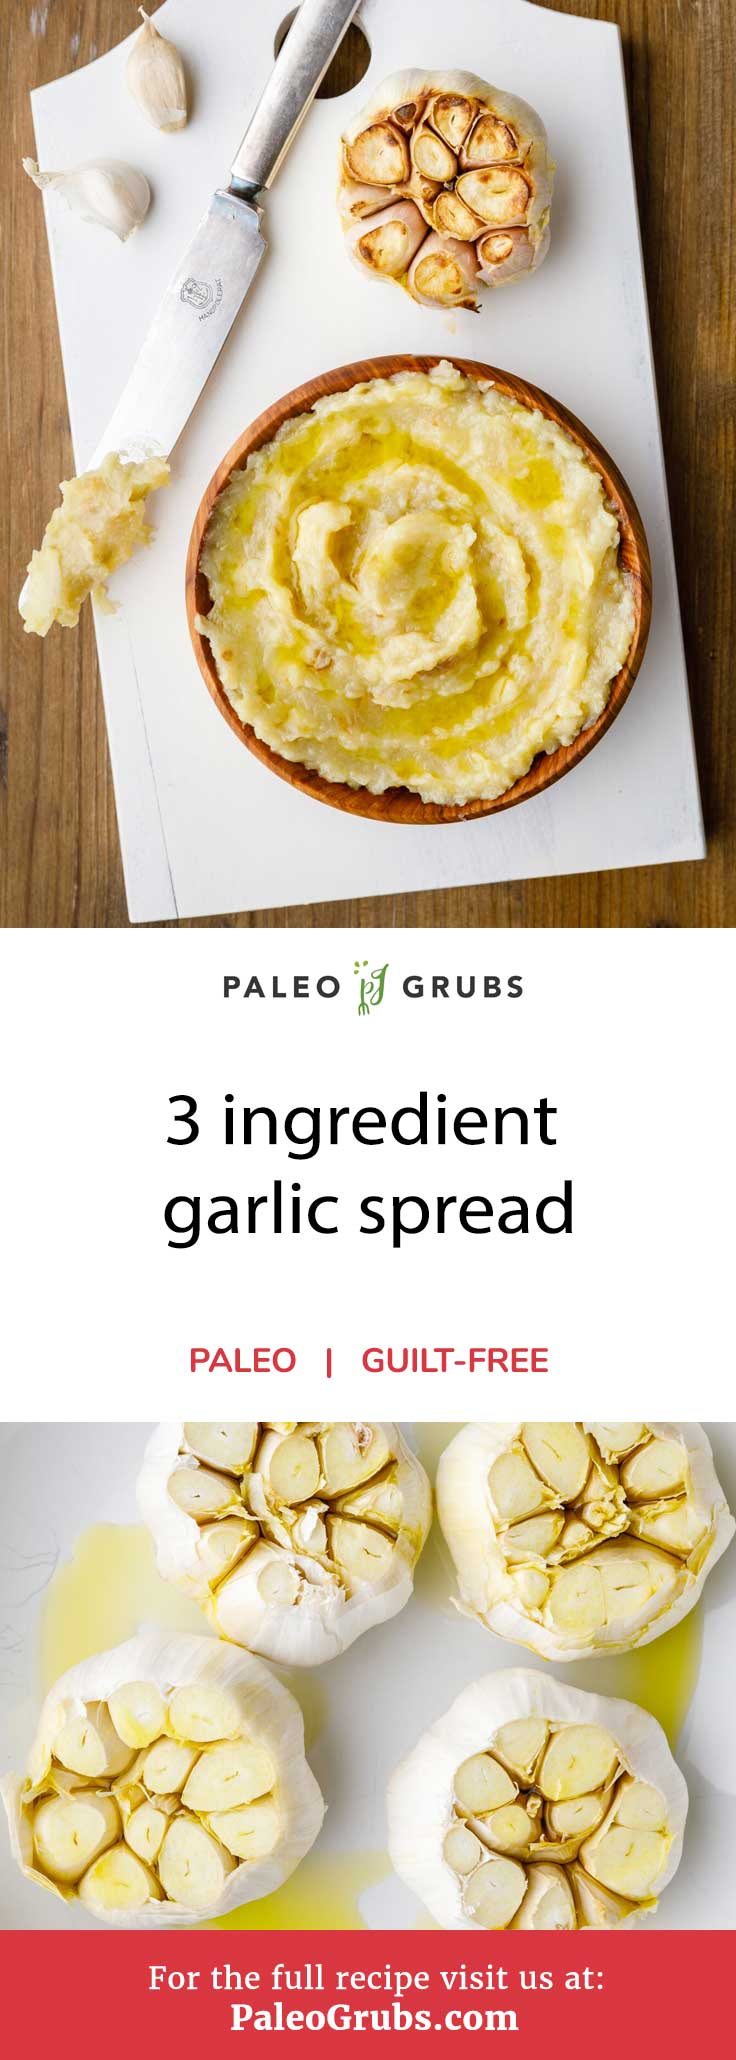 Anyone who has been on a paleo diet knows all about the importance of adding oils, spreads, and various types of sauces to their meals for added flavor, nutrition, and texture. Ghee is a commonly used alternative to butter, but this garlic spread recipe might just be a contender. Using only 3 ingredients, my homemade roasted garlic spread pairs well with almost anything and will make a hearty addition to homemade broth and bread.